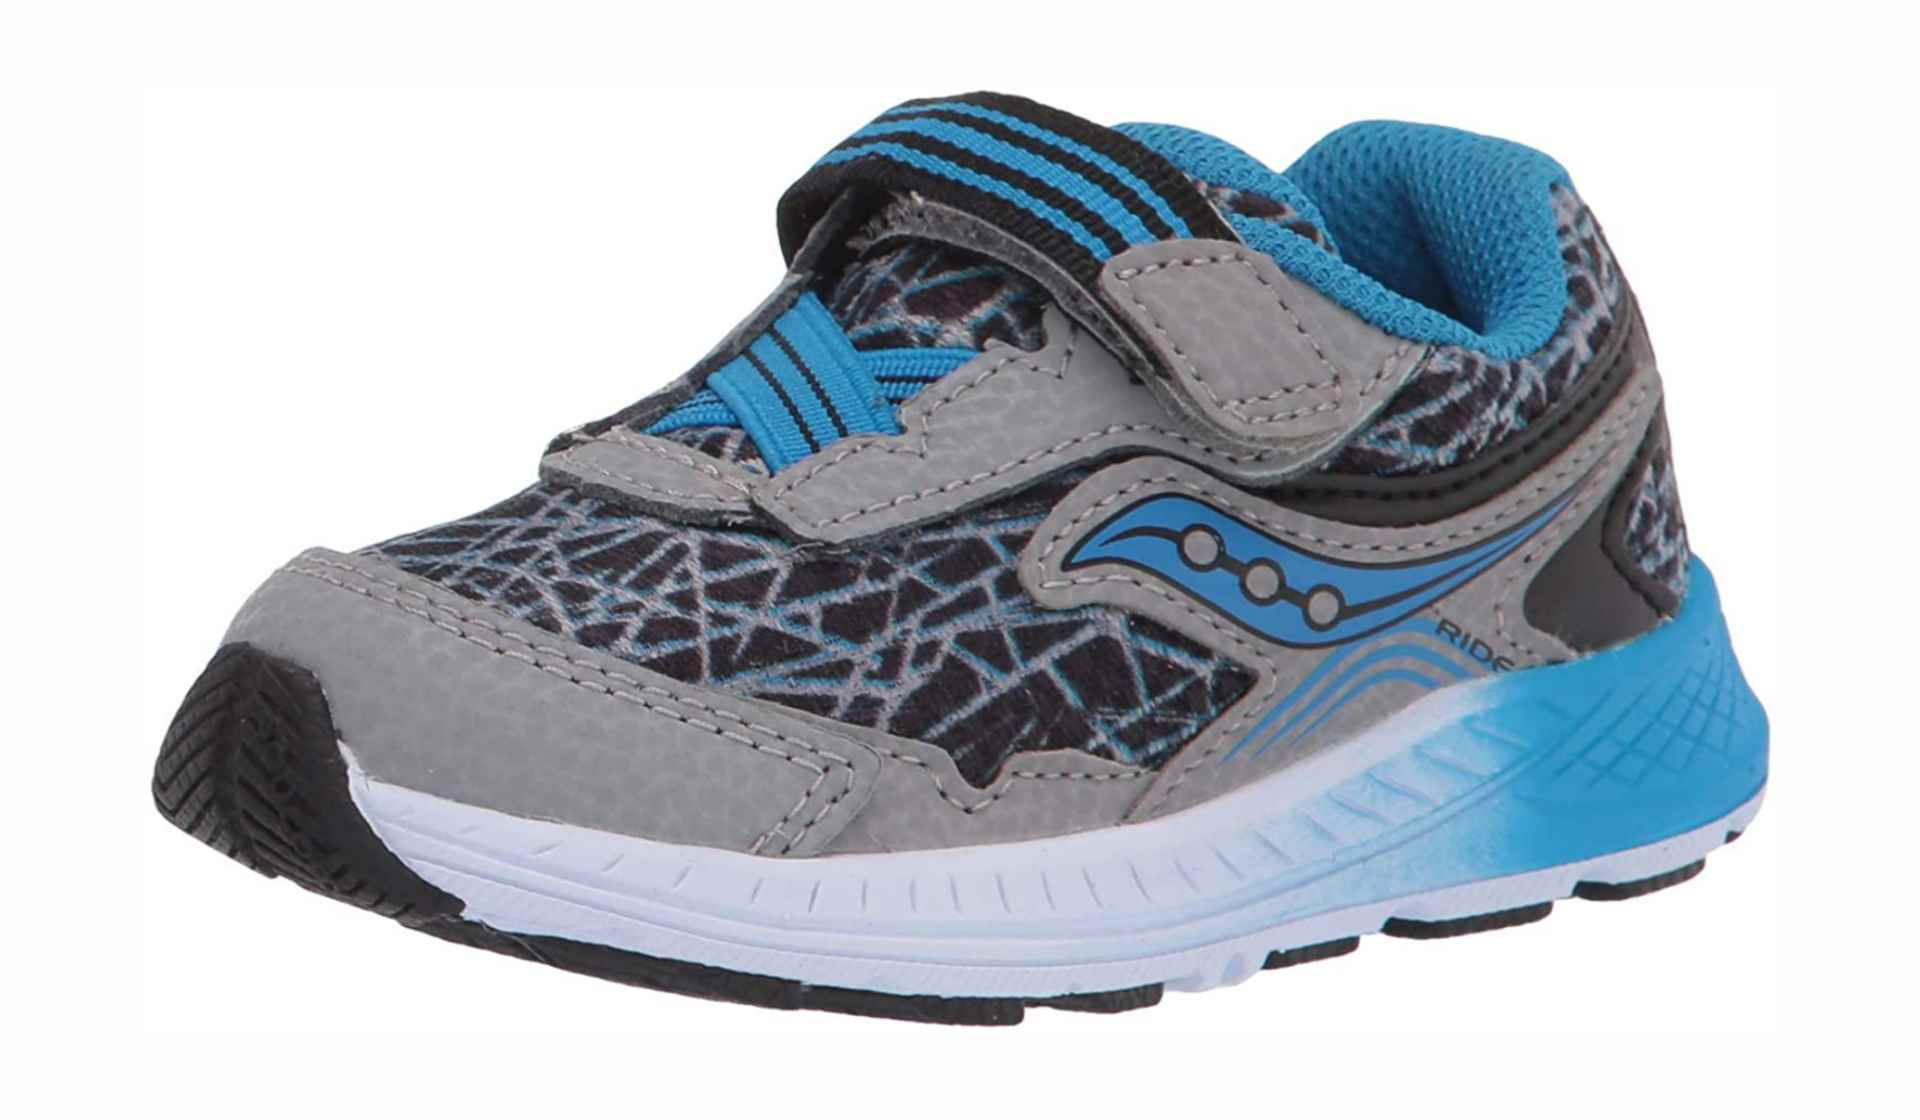 Sneakers for kids with wide feet